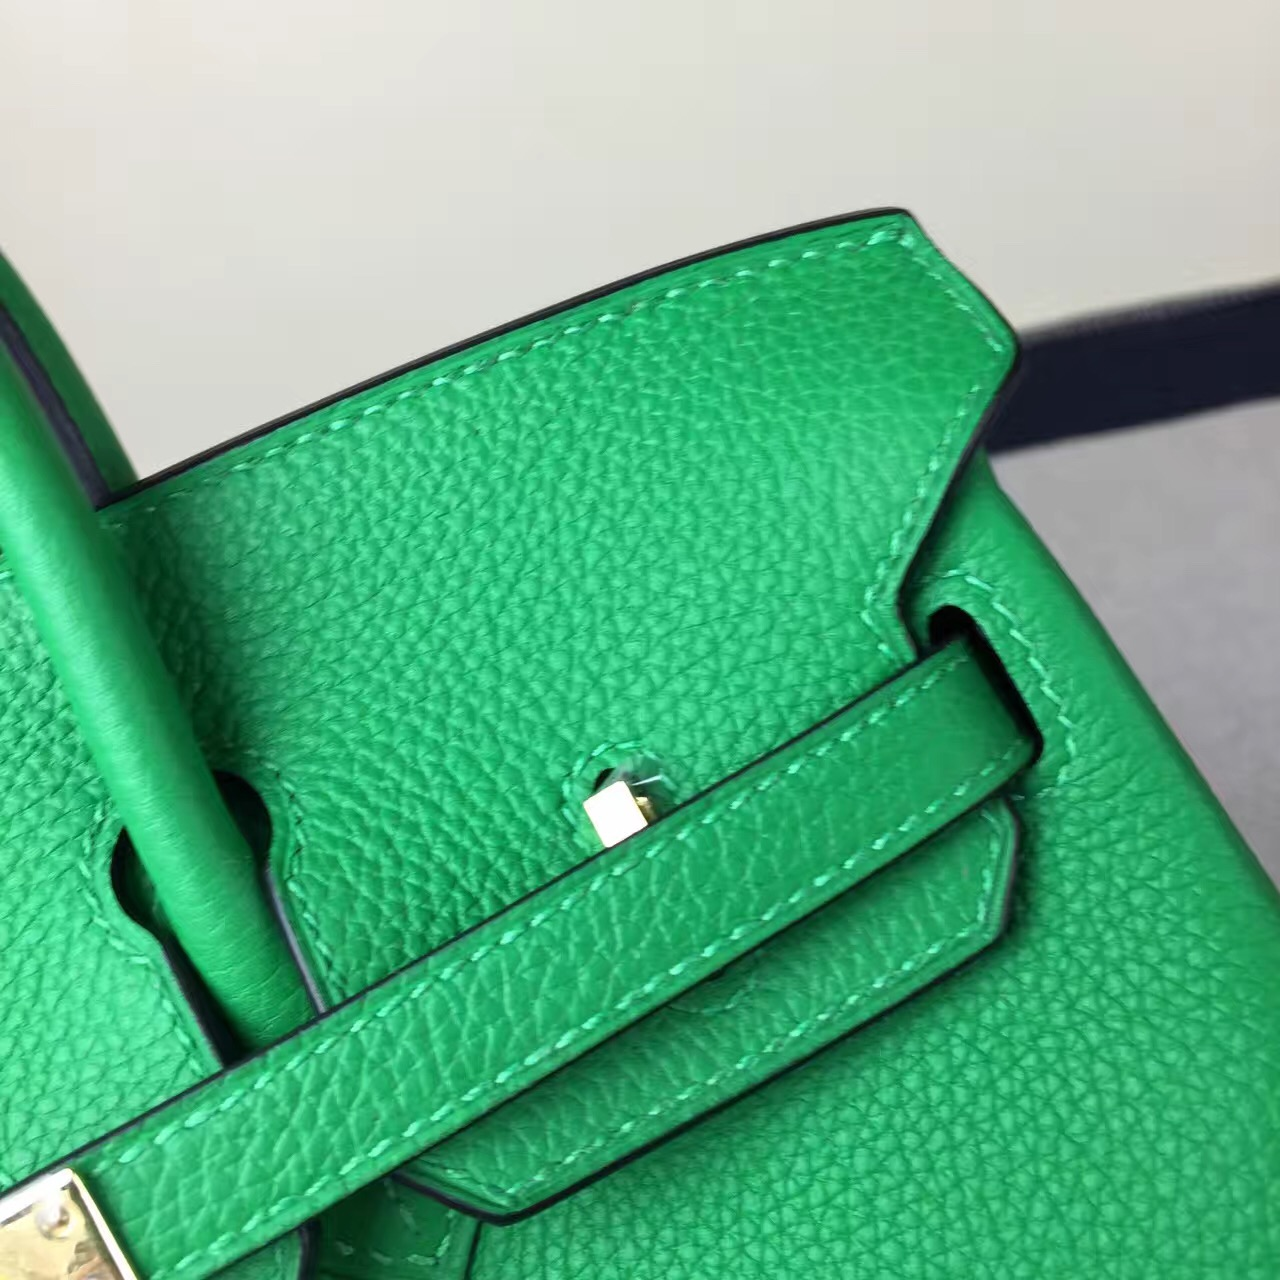 Hand Stitching Hermes Togo Leather Birkin Bag 25cm in 1K Bamboo Green